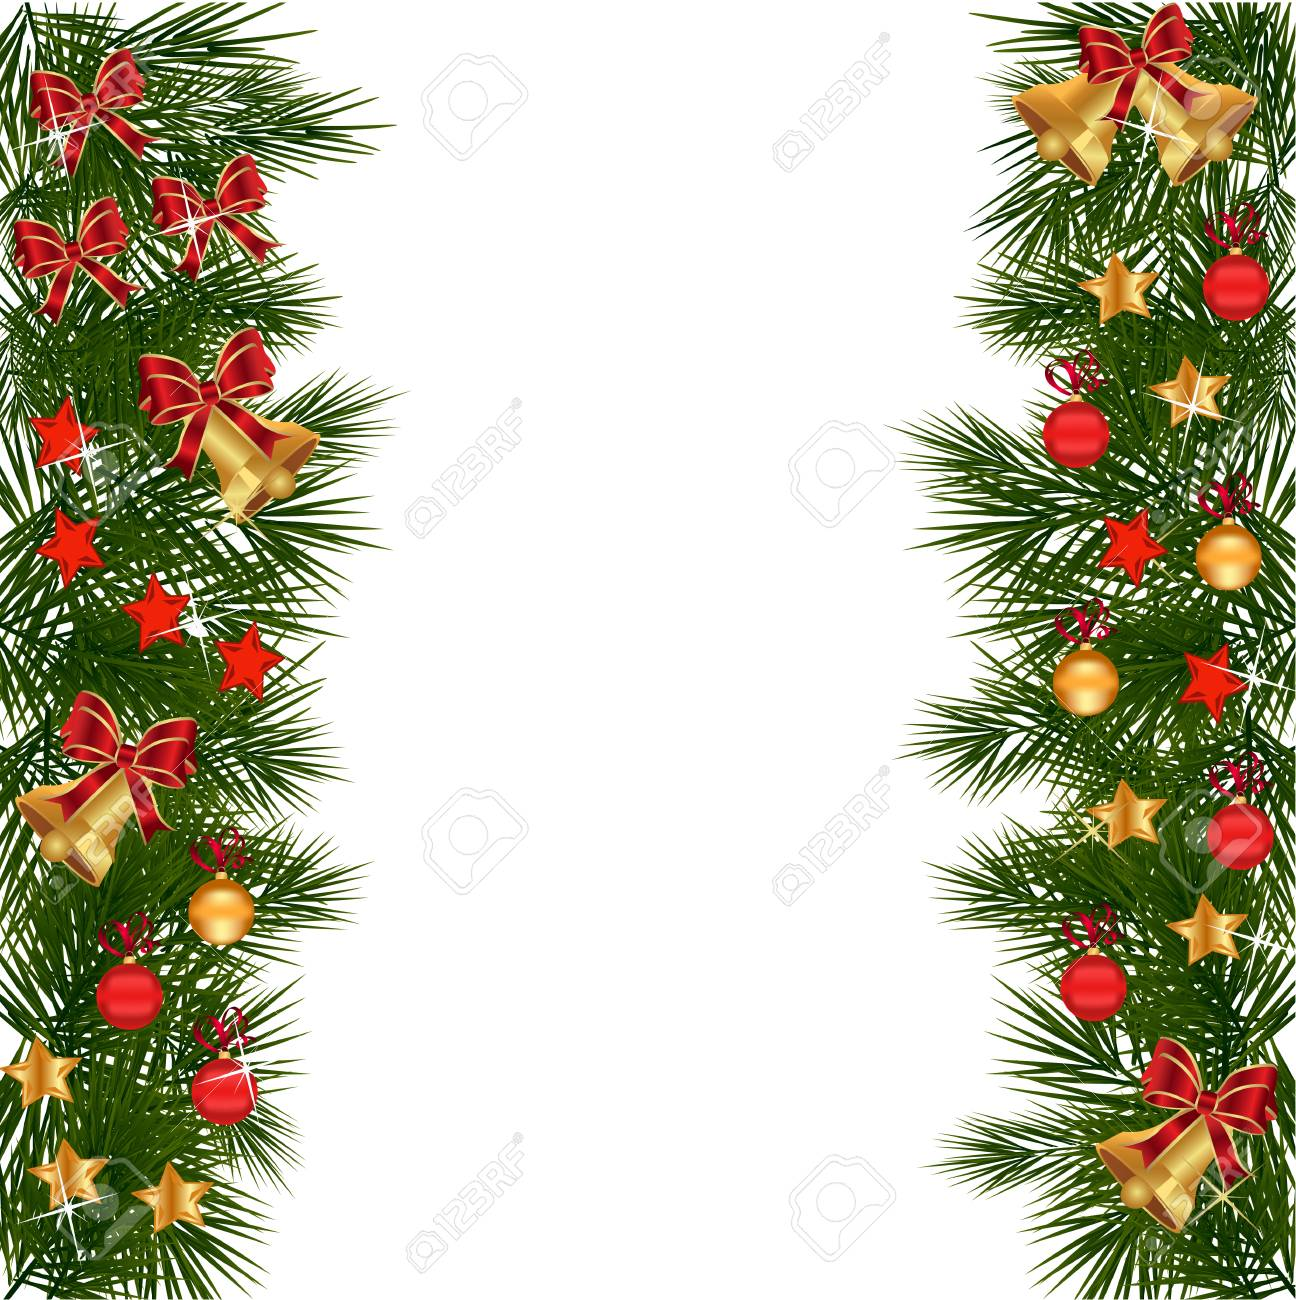 Christmas Leaves.Christmas Garland With Decorations And Green Leaves Over White